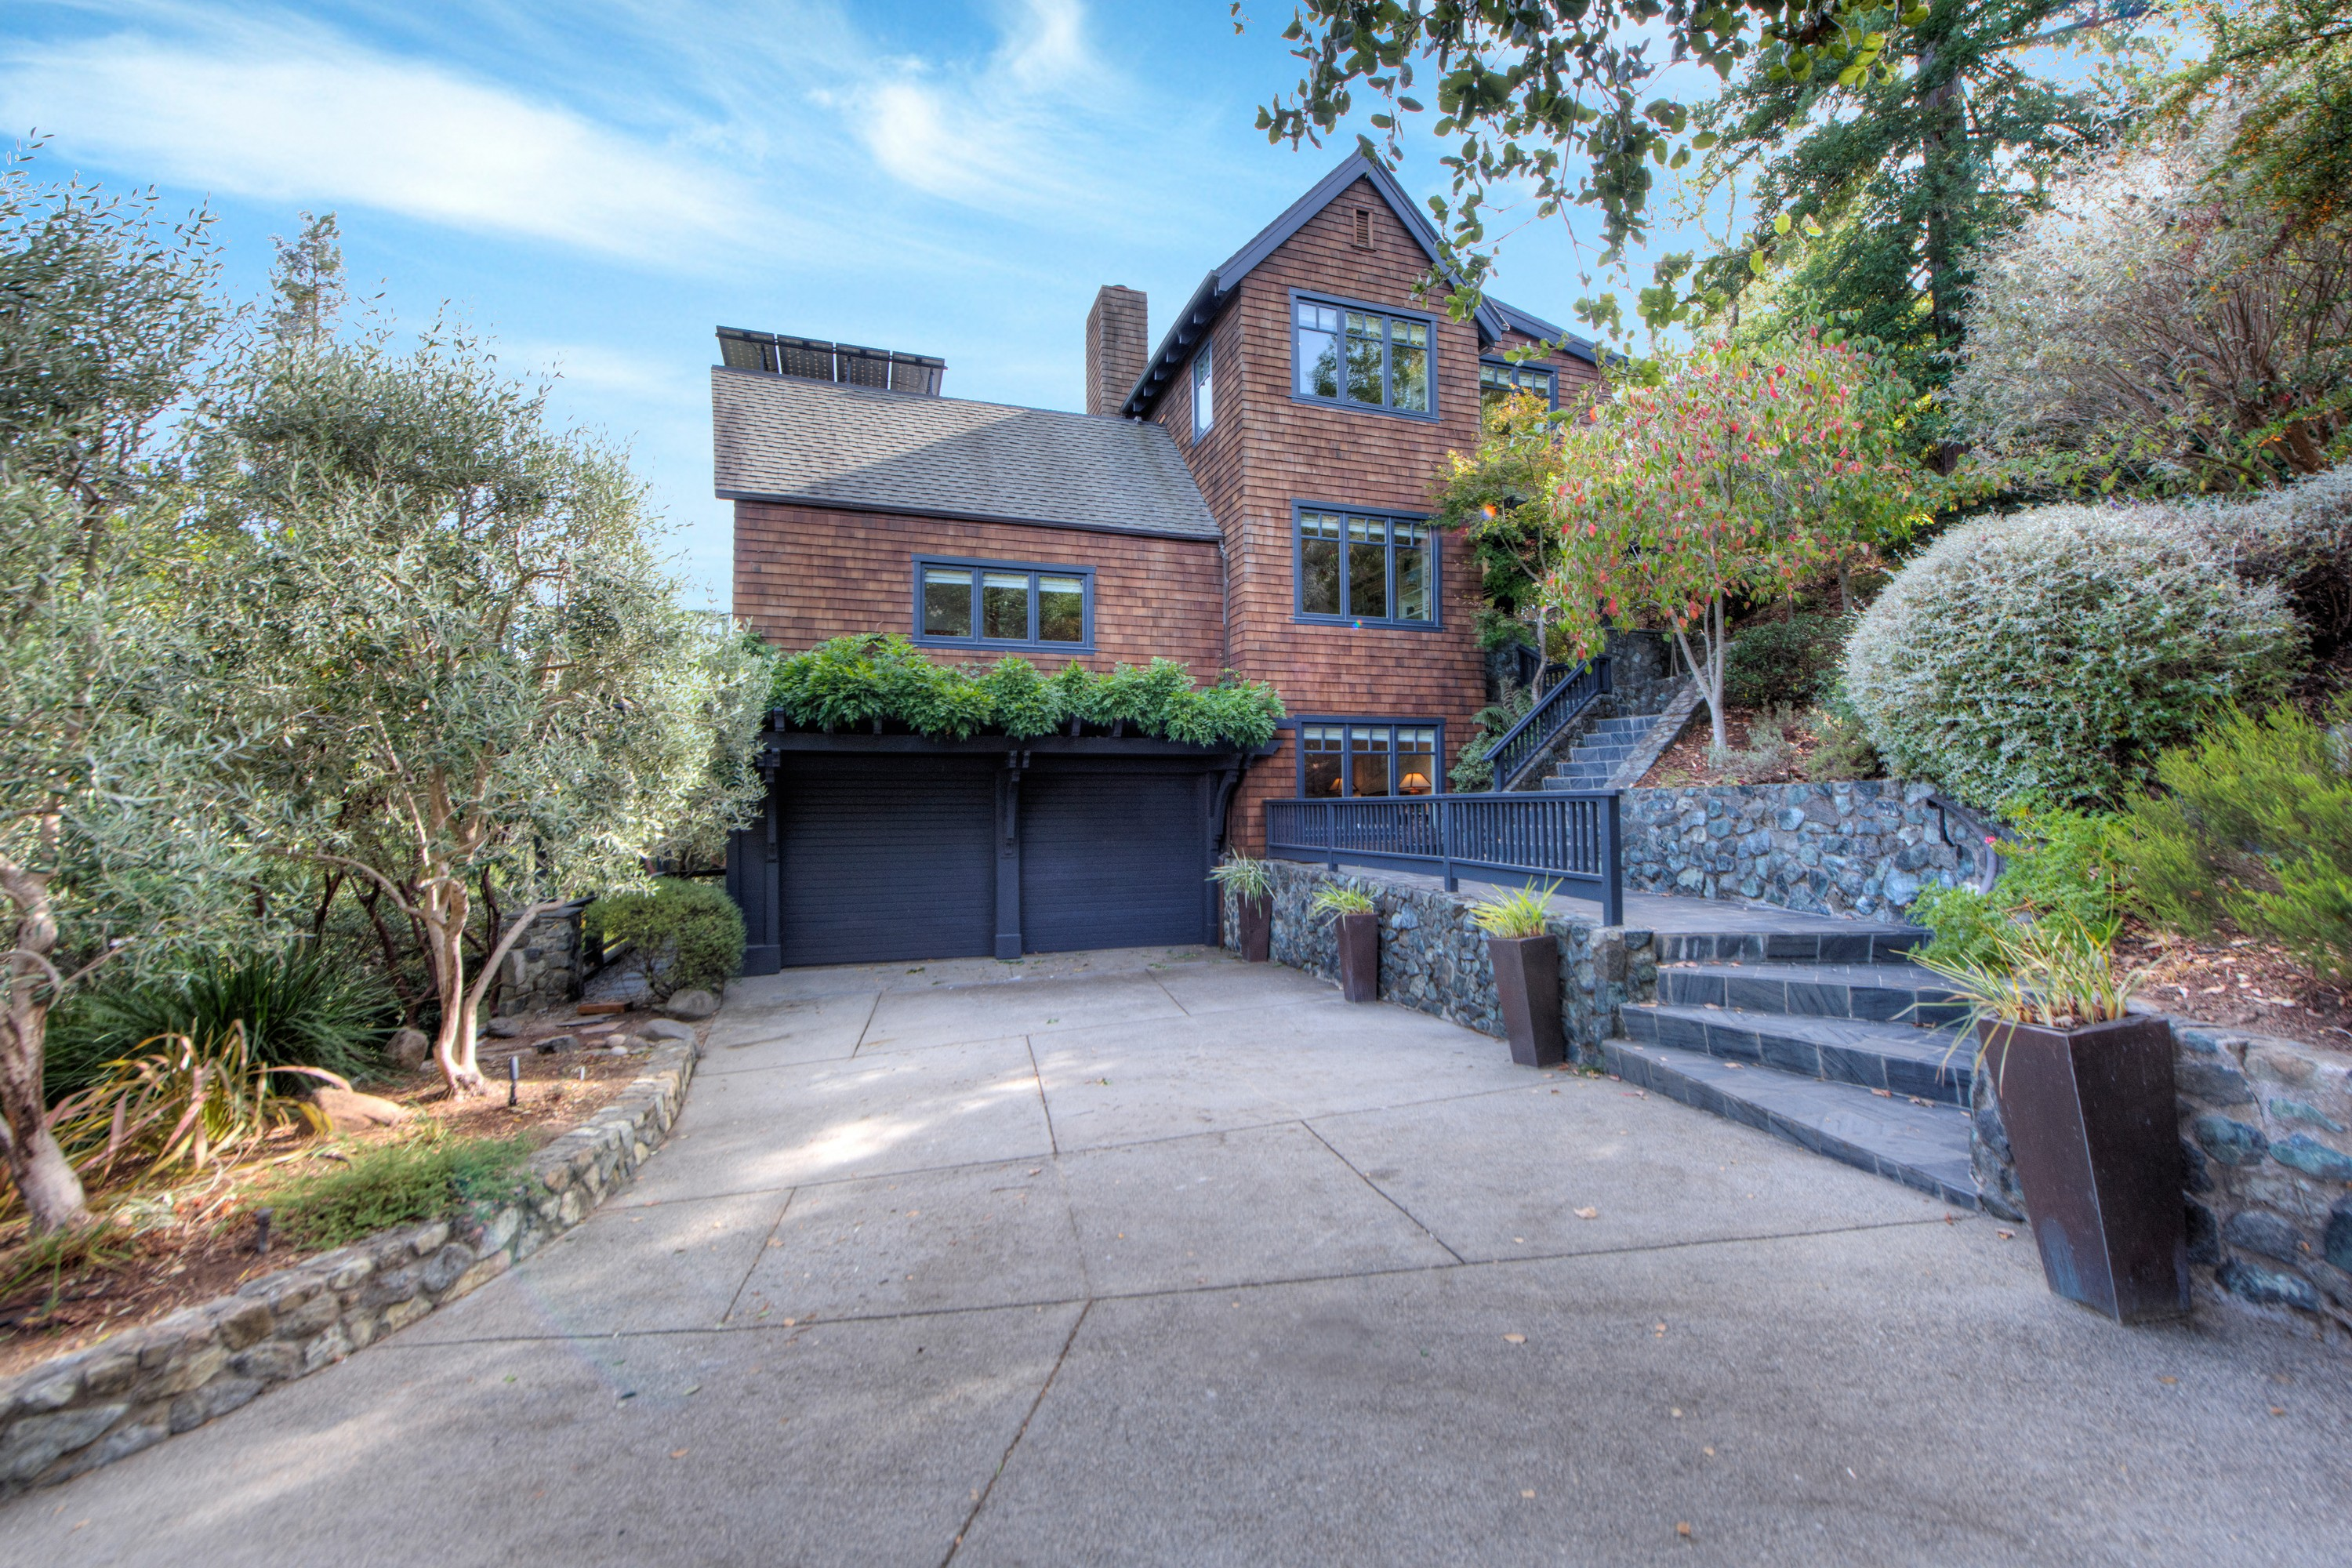 open-houses property at Remarks Renovated and Wonderfully Conceived Craftsman Family Home